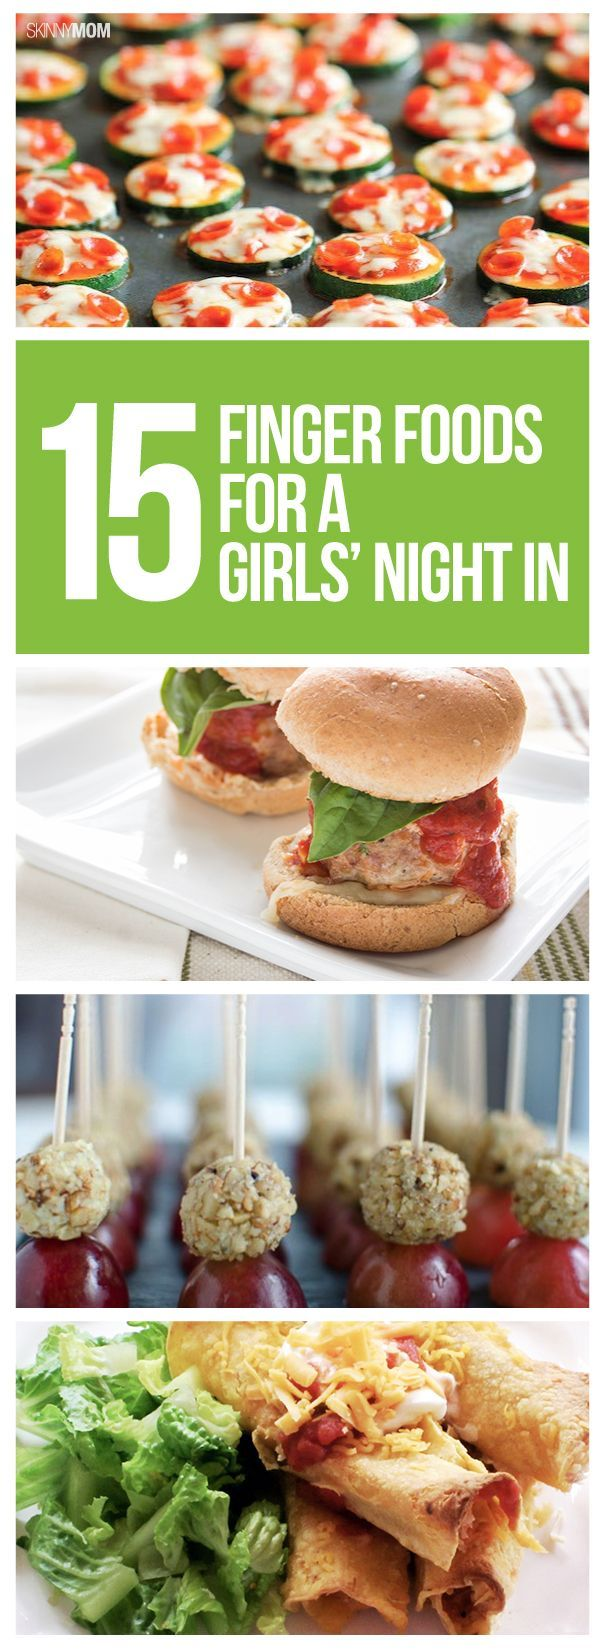 It's ladies' night! Make these fun foods for a girls night in! Now all you need is a glass of wine.